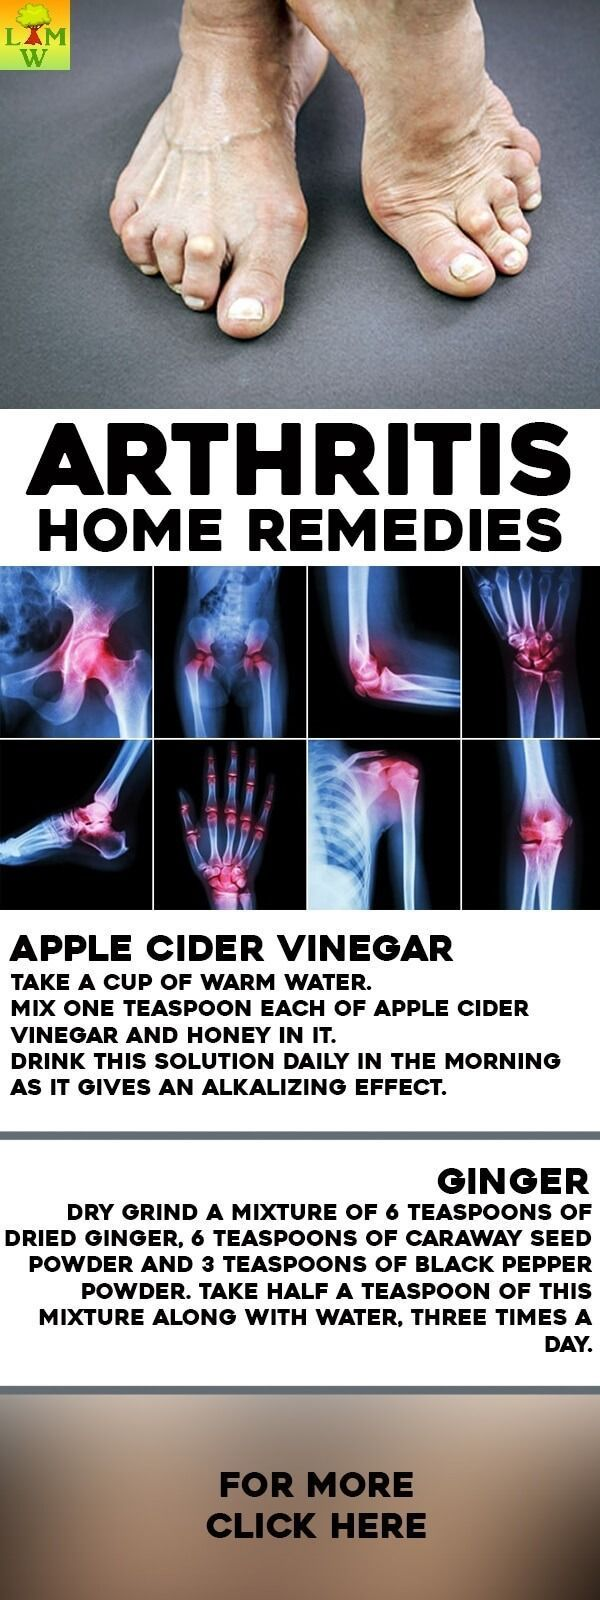 541 Best Natural Home Remedies Images On Pinterest Counterpain Medium A Doctor Can Prescribe Medication Or You Take Over The Counter Pain Relievers